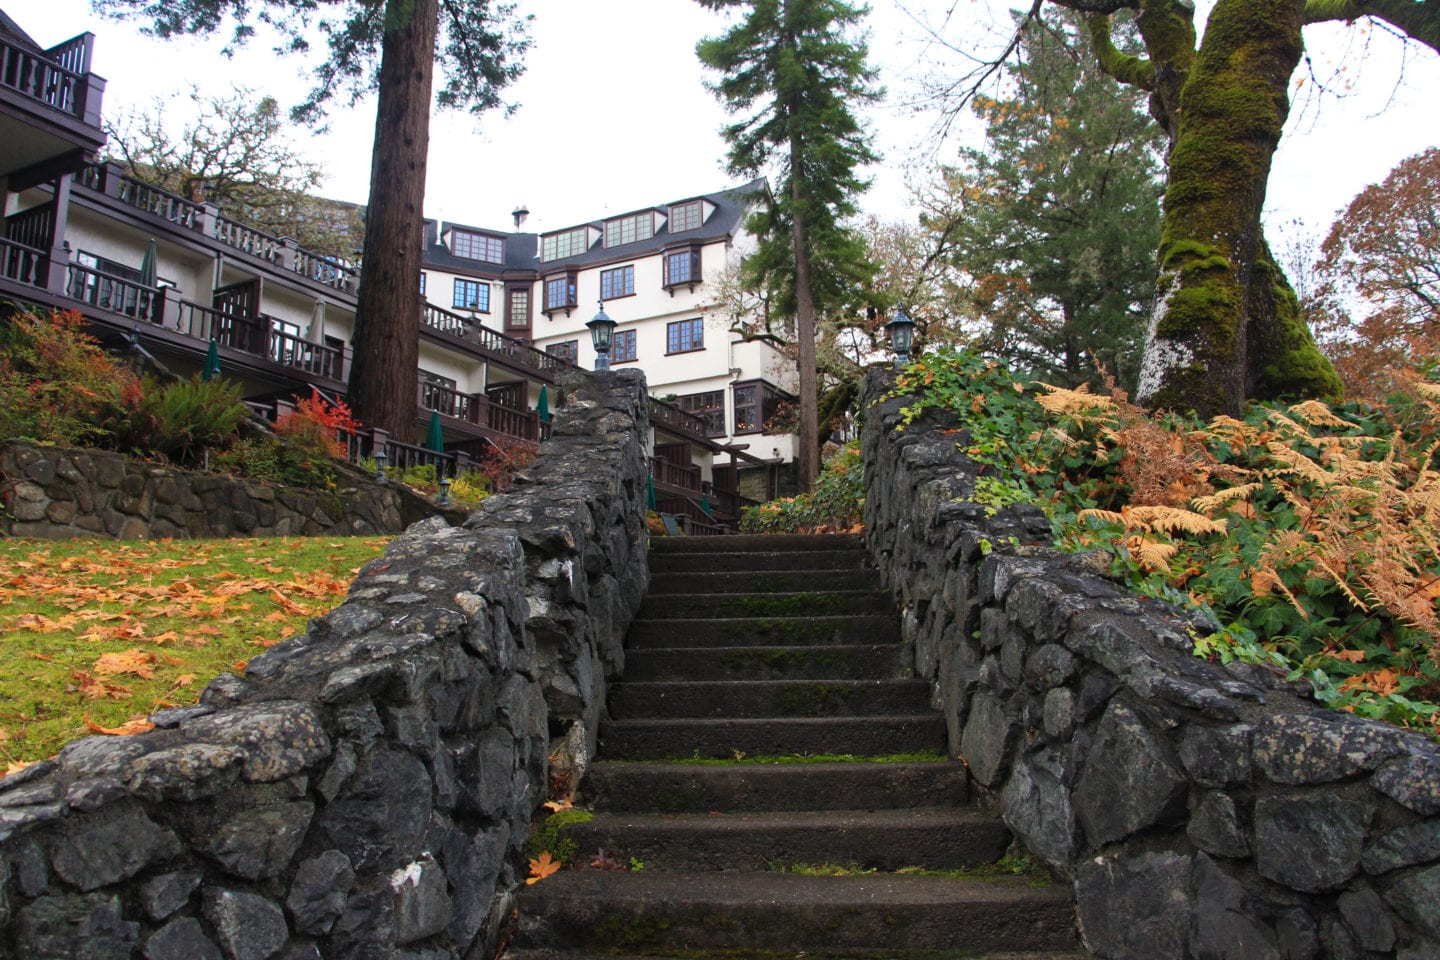 Stairs leading from Benbow Historic Inn to the Eel River